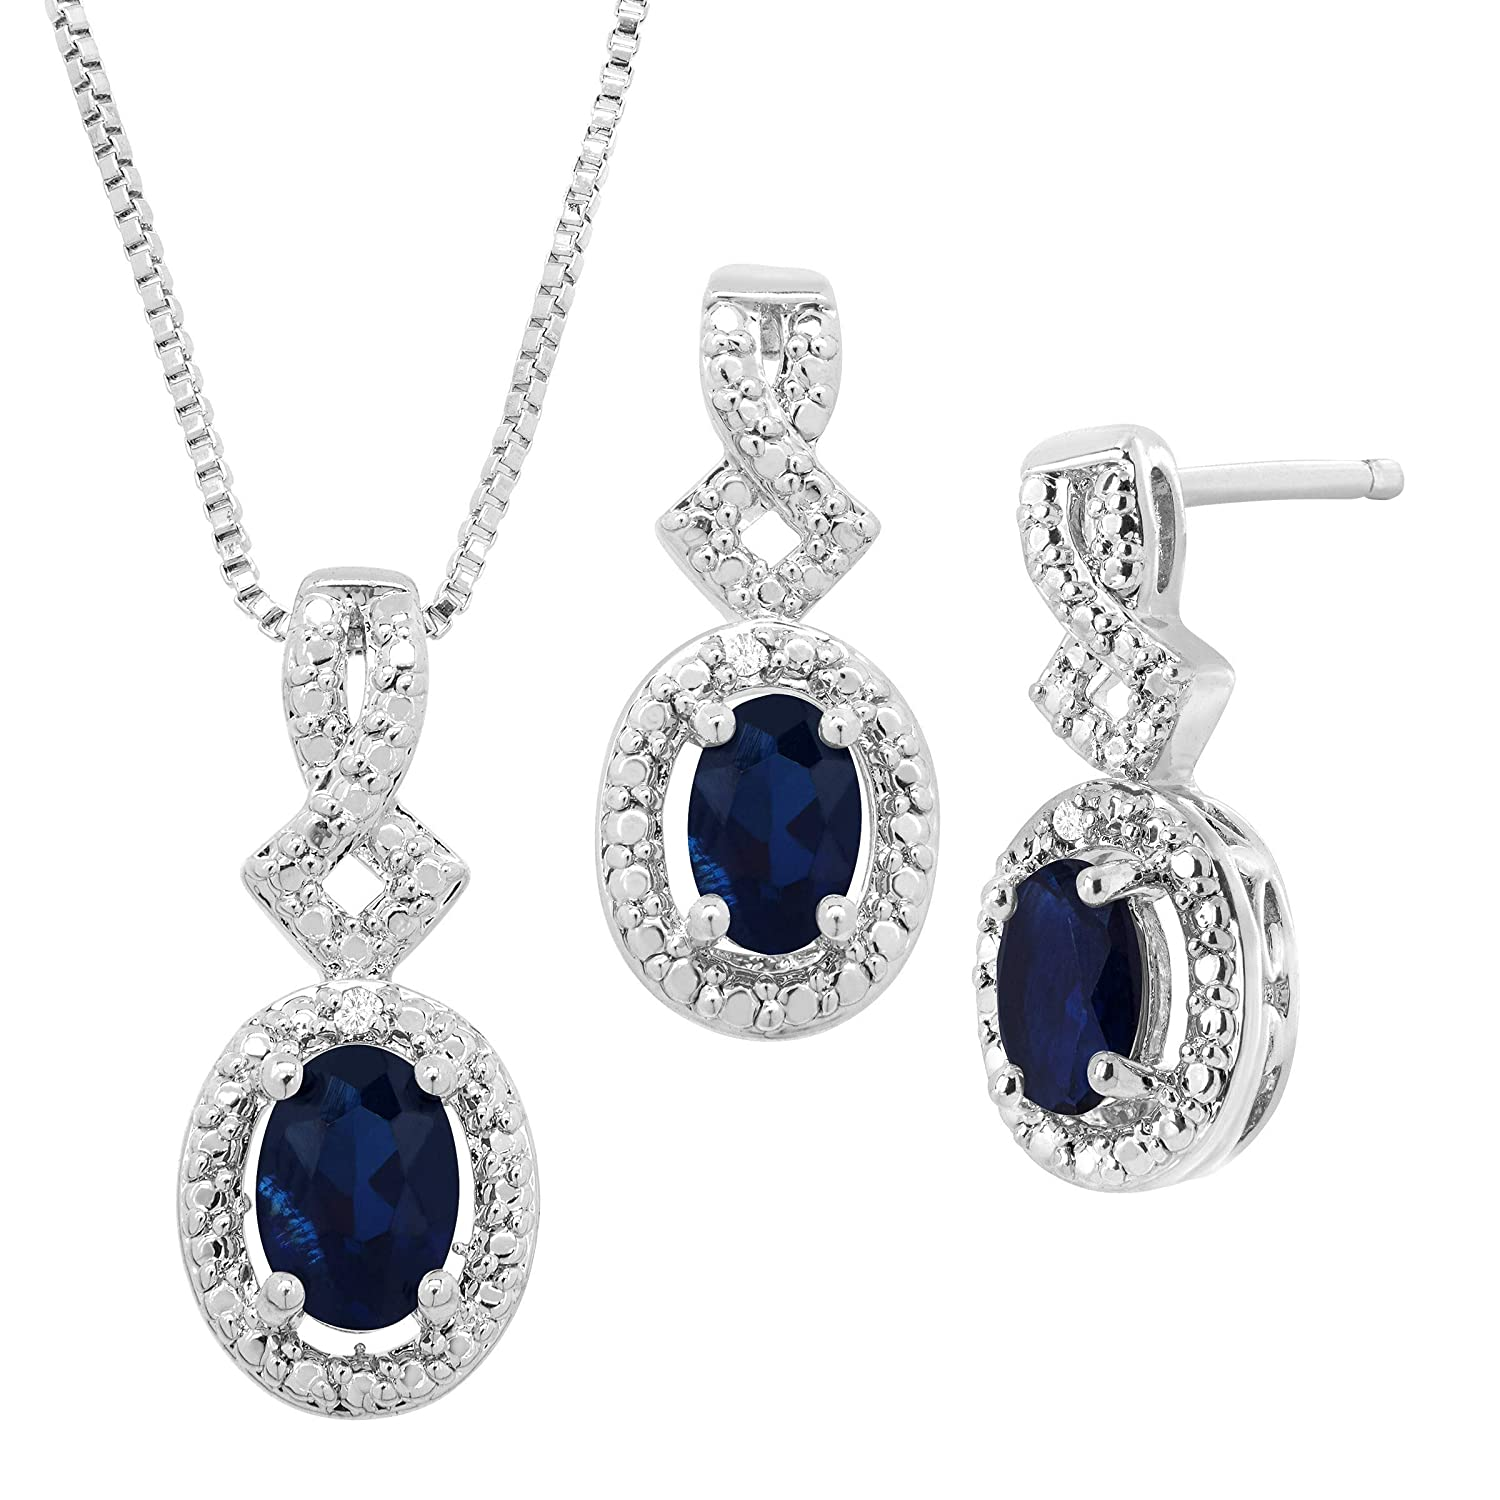 Bracelet Created Gemstone Pendant Earring /& Ring Set with Diamonds in 14K Gold-Plated Brass